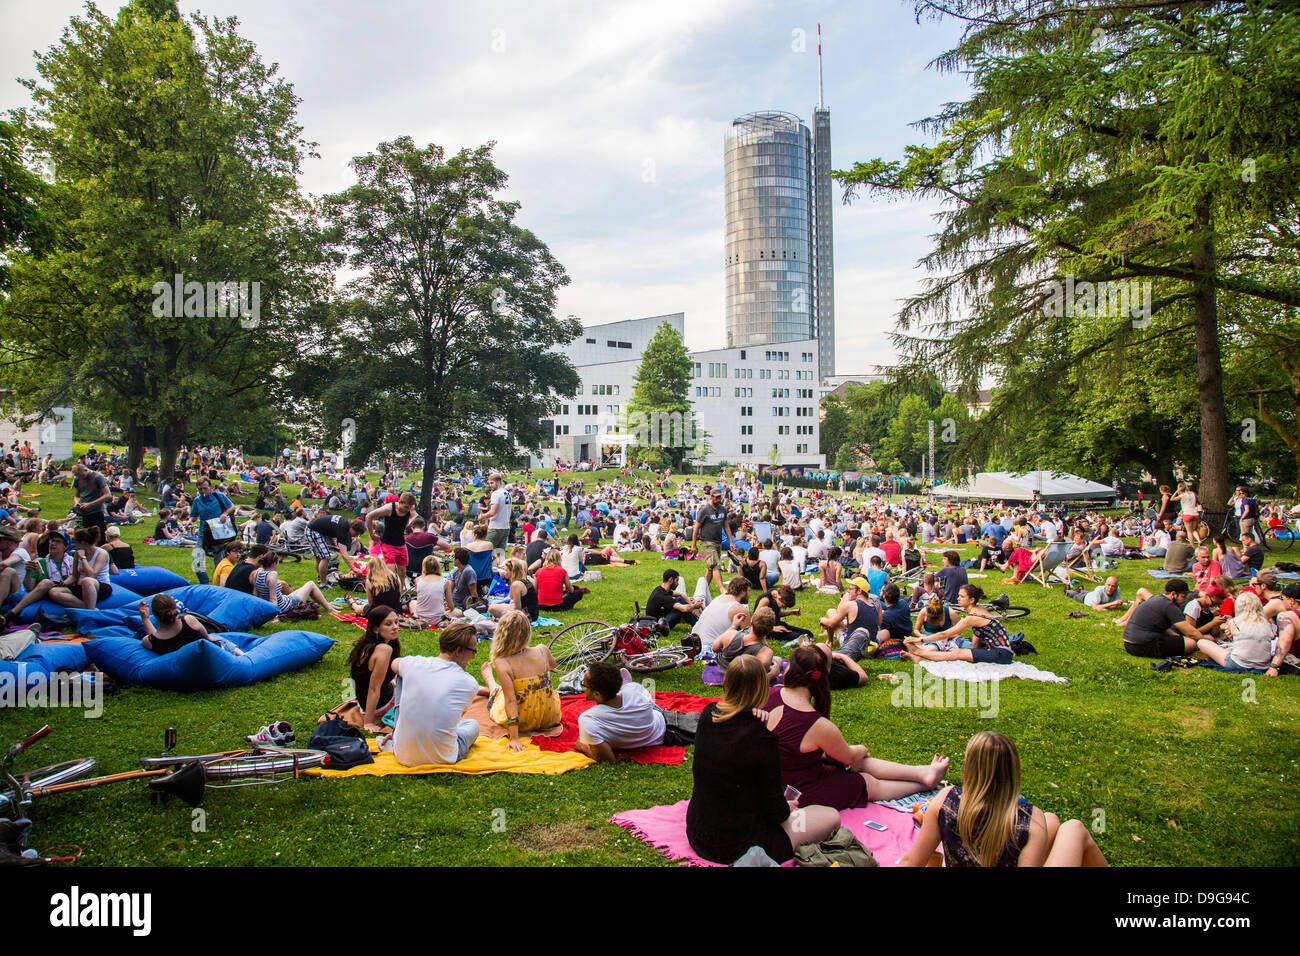 Electronic music festival in a public city park, summer festival in Essen, Germany. Picnic and electronic sound. Stock Photo